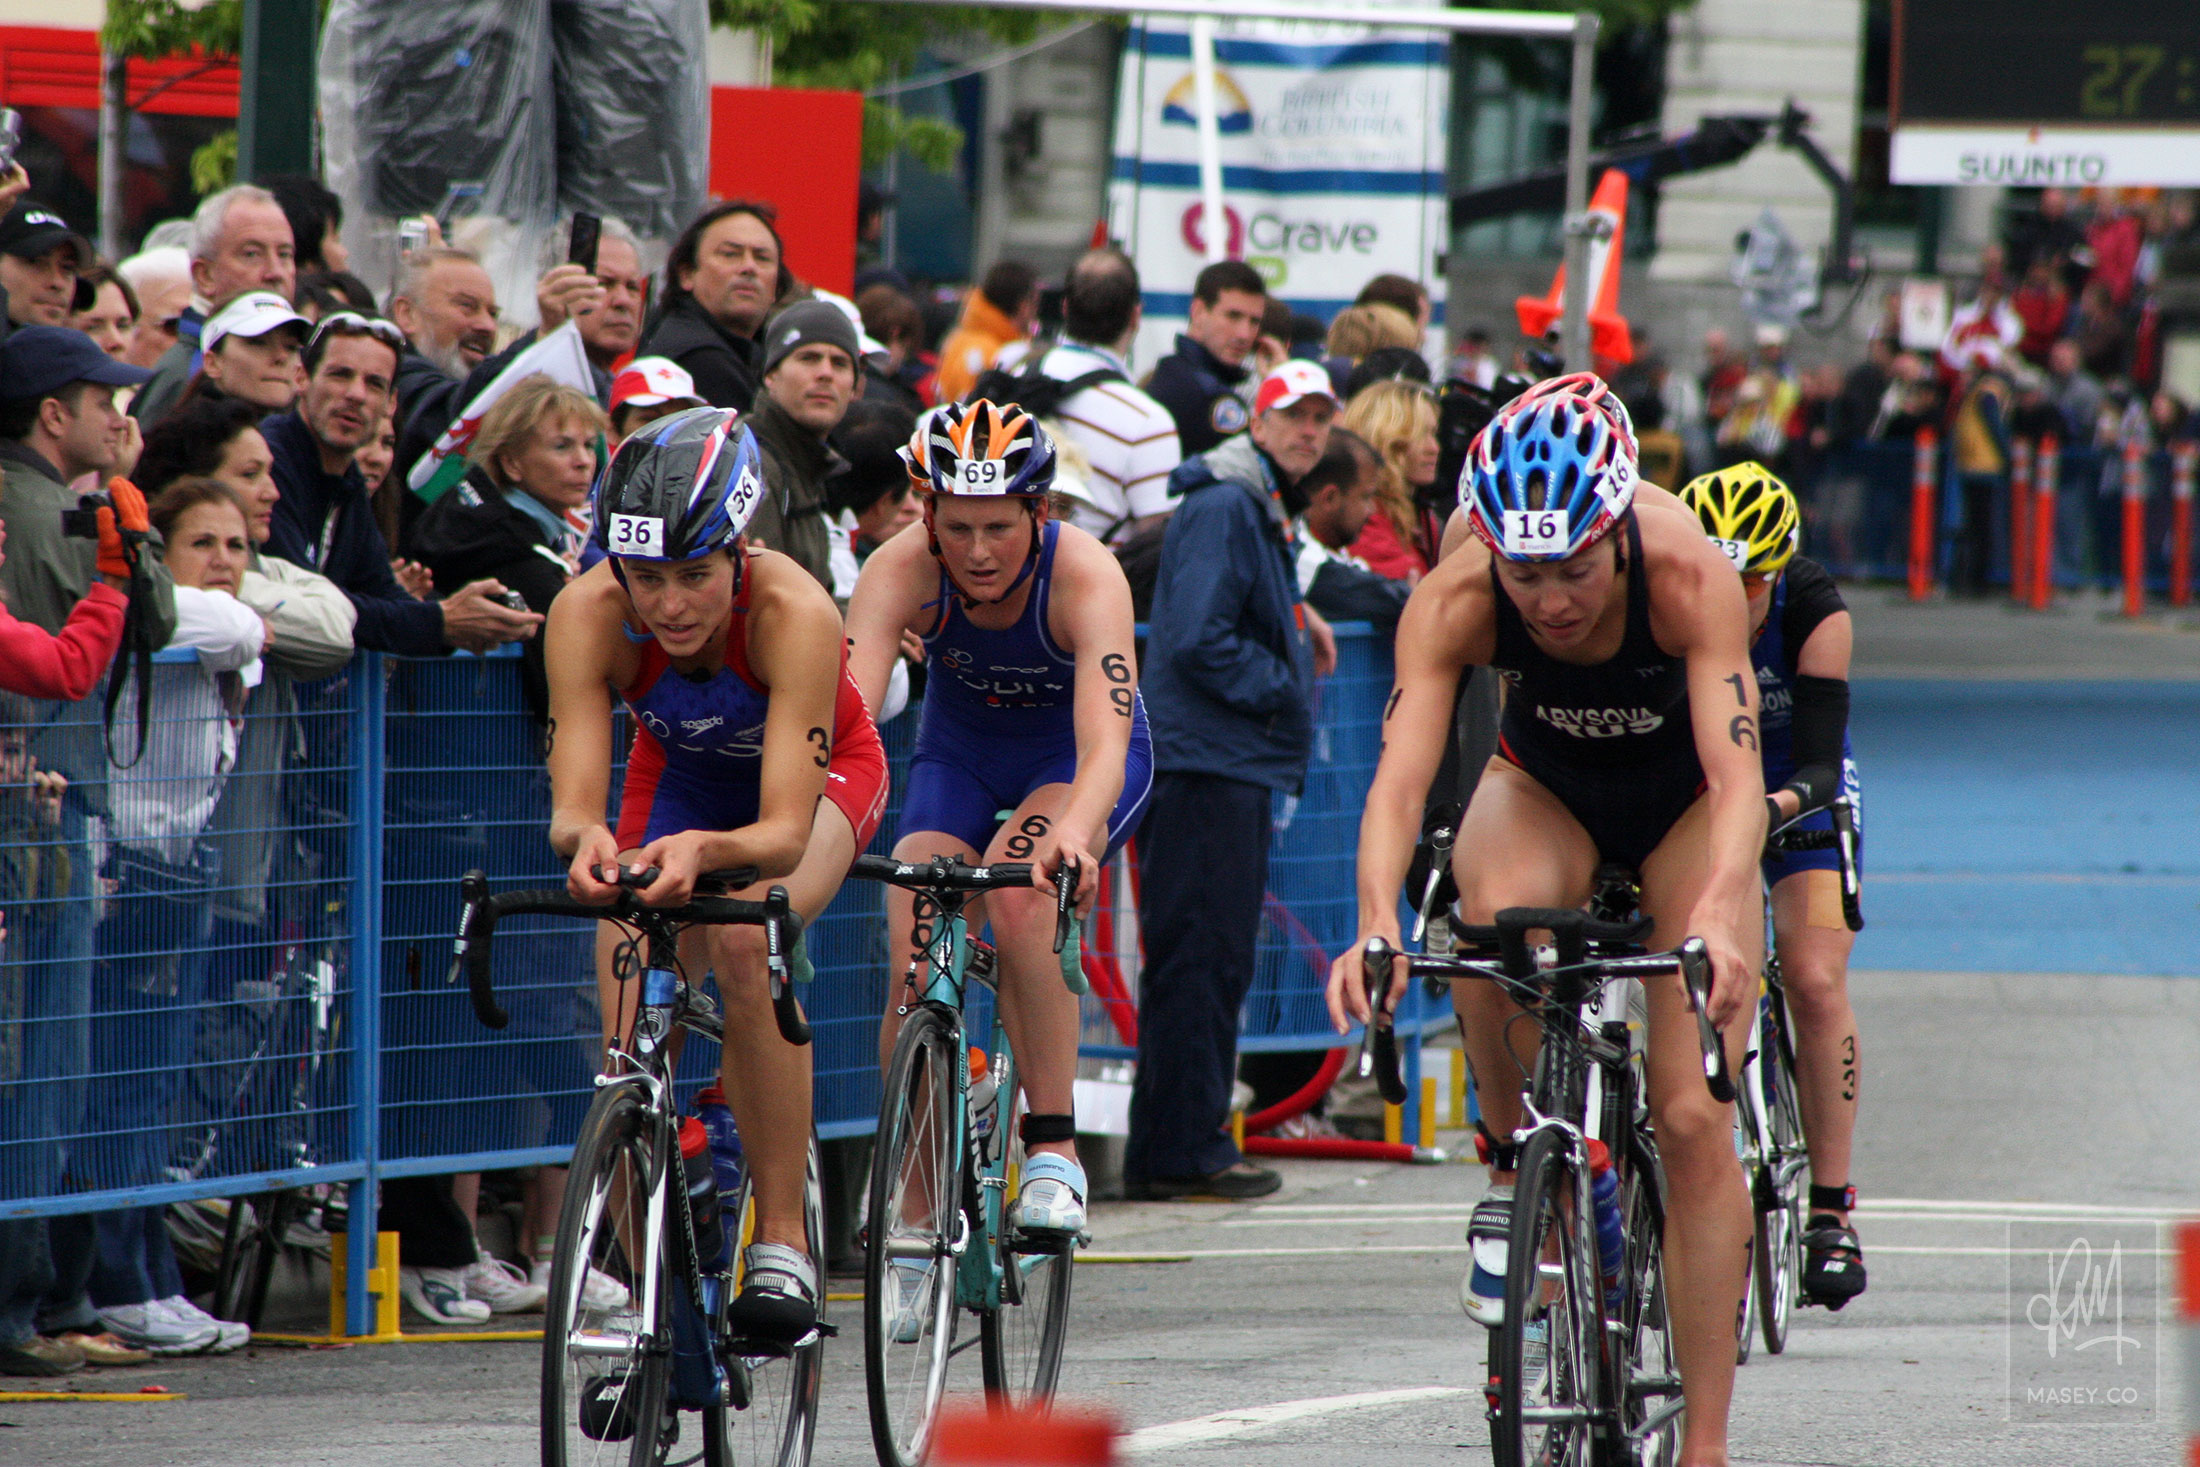 2008 ITU World Championships in Vancouver